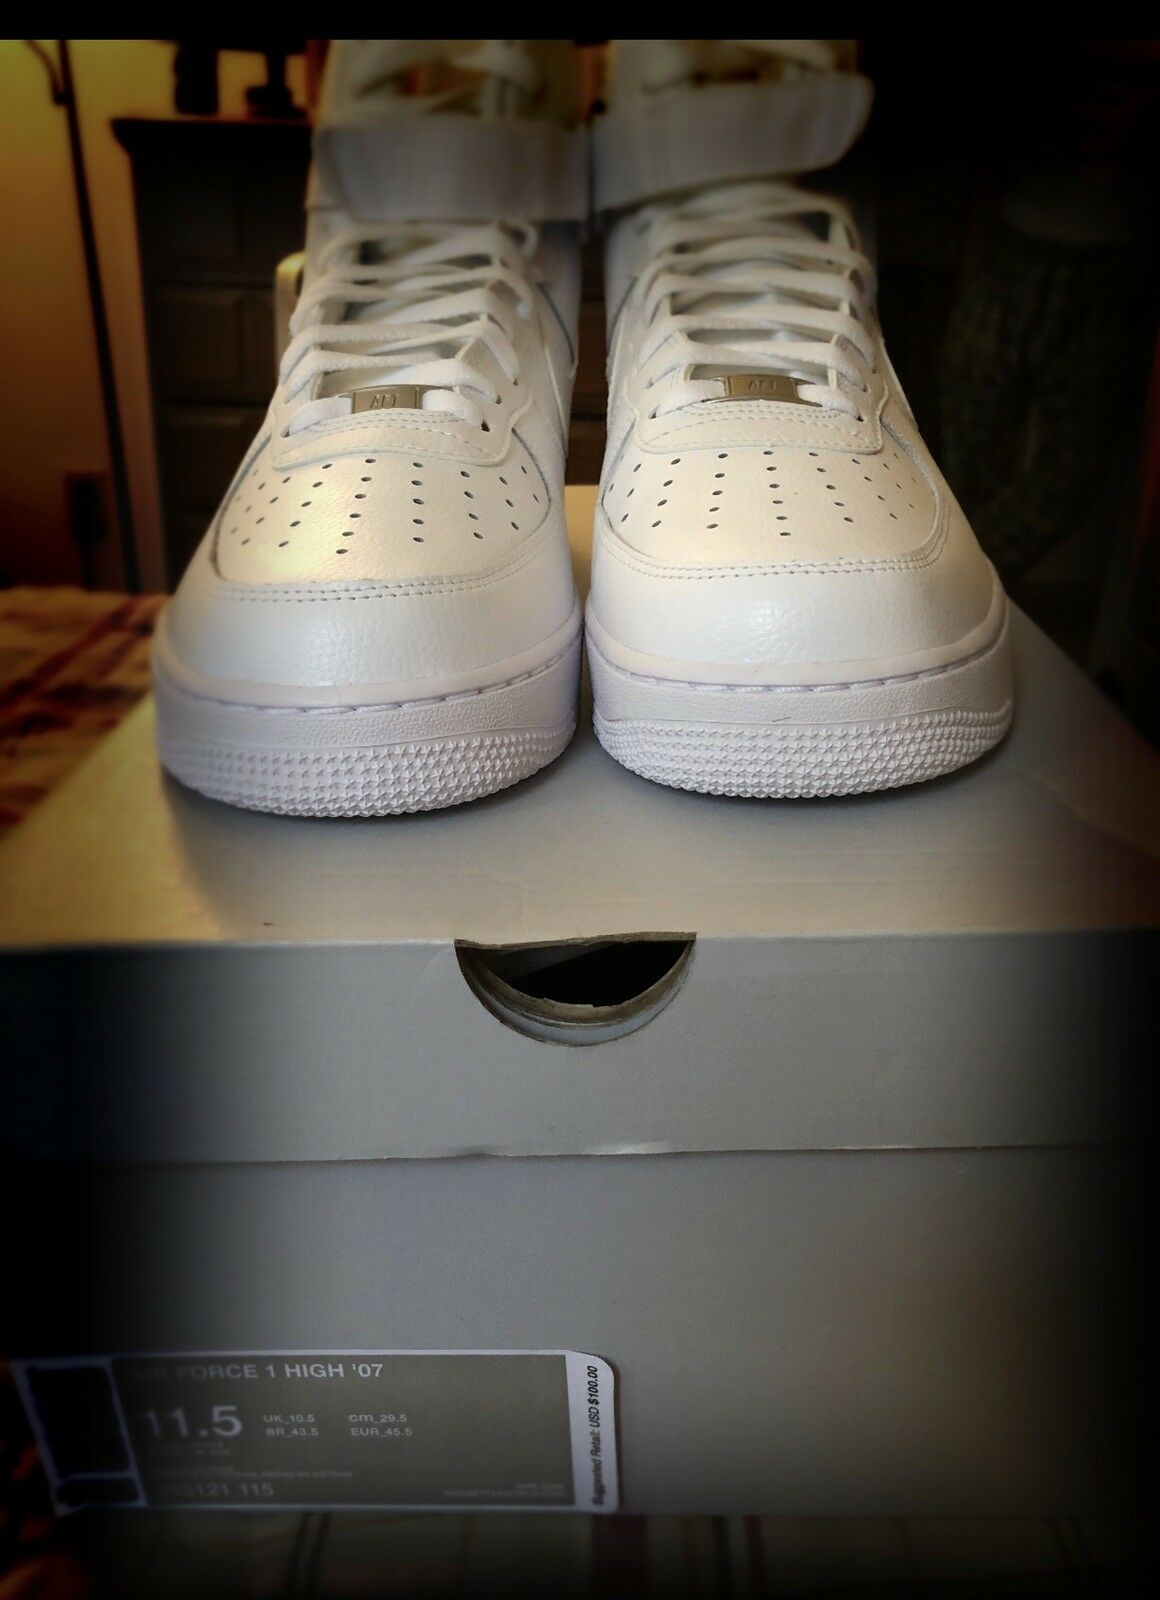 Airforce Deadstock 1s. Nike NEW BRAND 9cea1pgpg3832 shoes